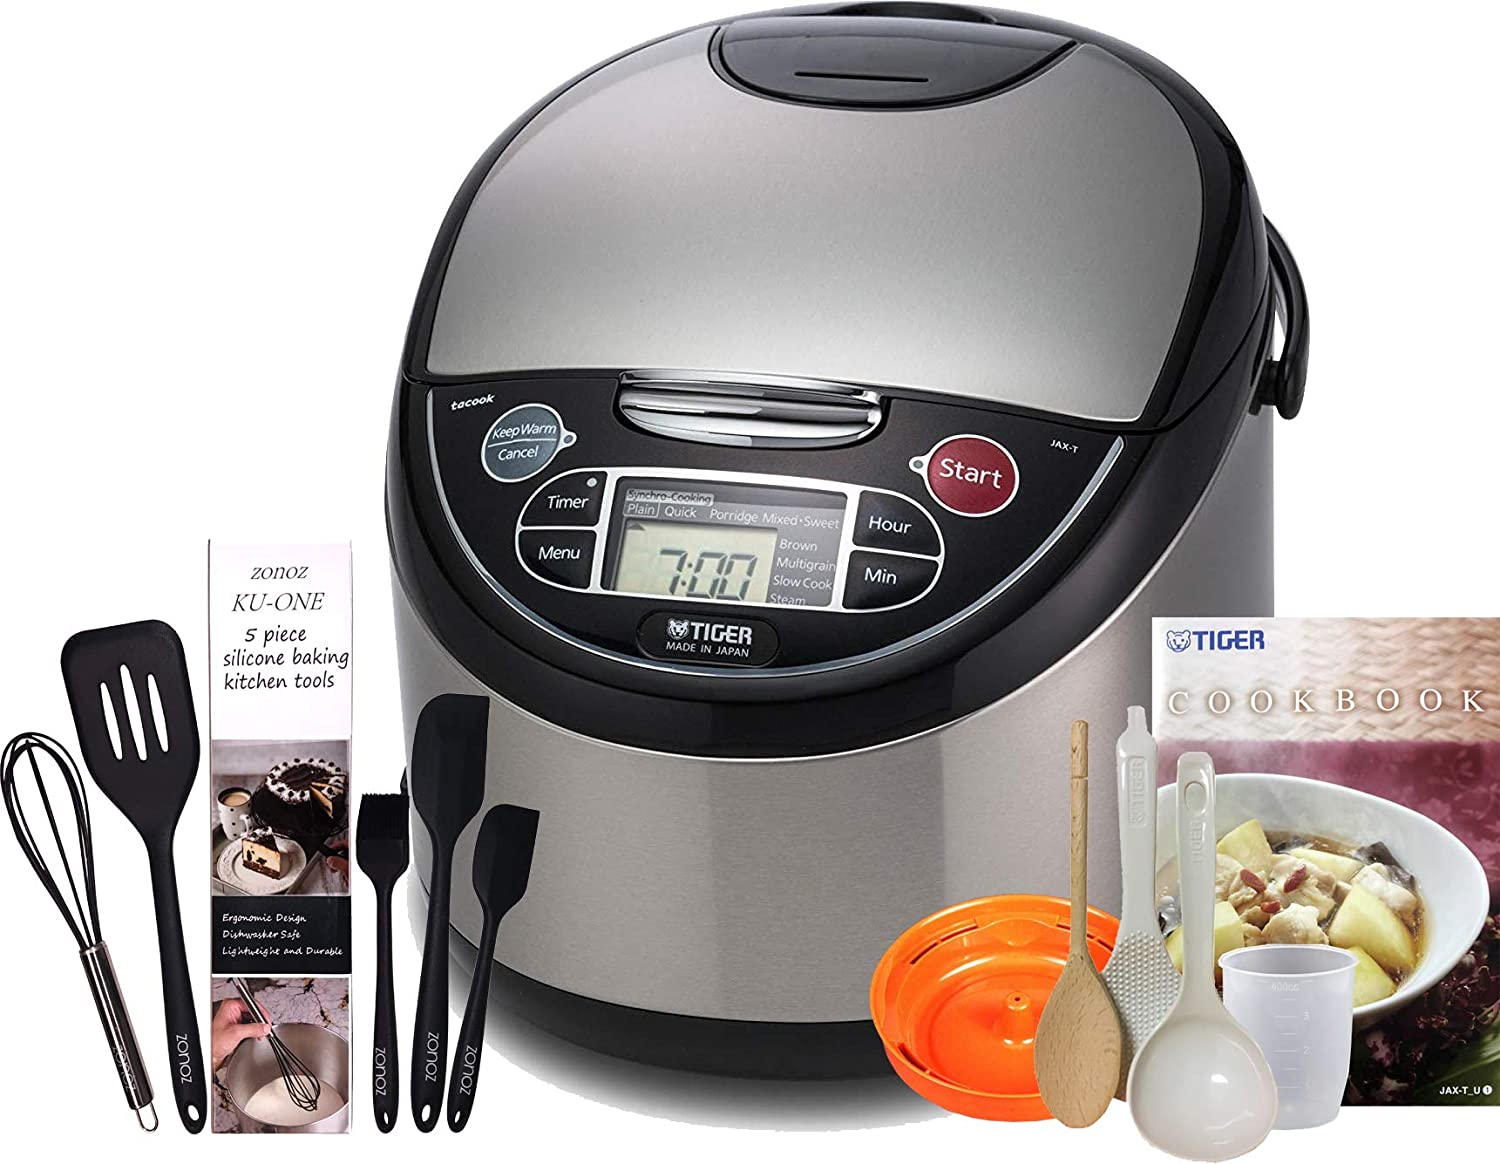 Tiger JAX-T18U-K (10 Cups Uncooked/20 Cups Cooked) Micom Rice Cooker with Food Steamer & Slow Cooker, Stainless Steel Black & Zonoz 8-Inch Rice Paddle/Wooden Stirring Spoon Bundle